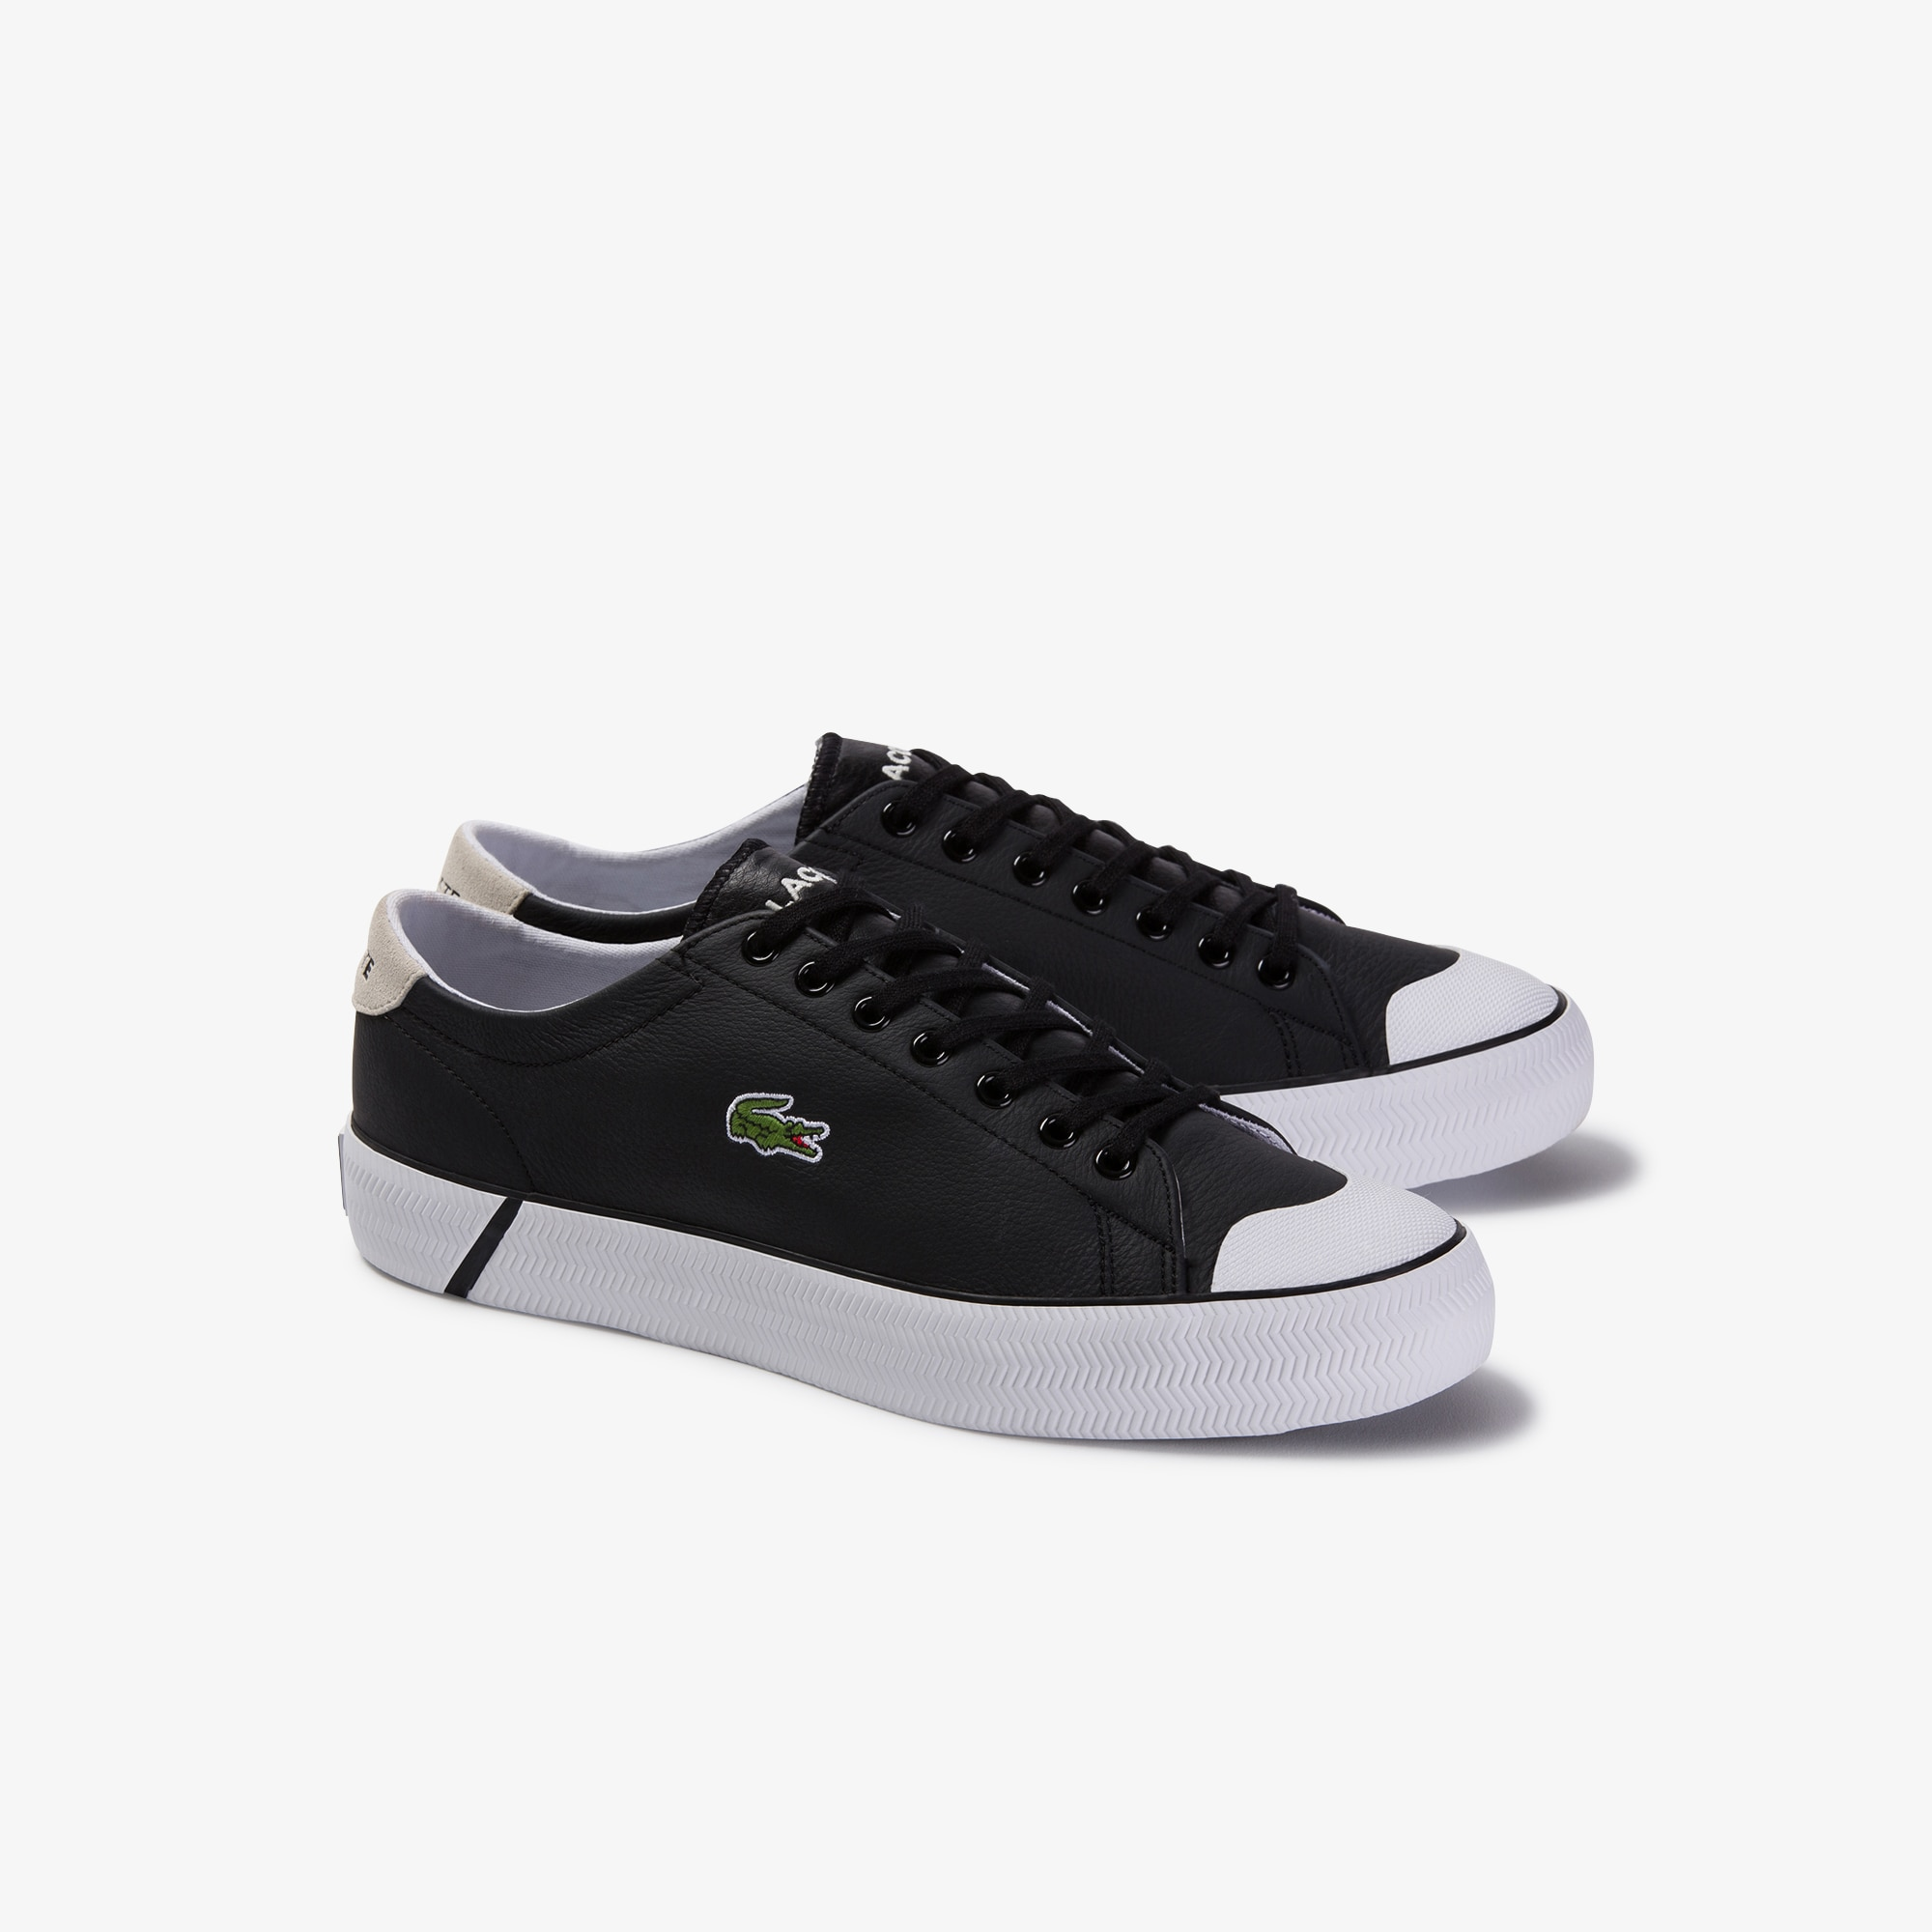 Women's Gripshot Leather Sneakers